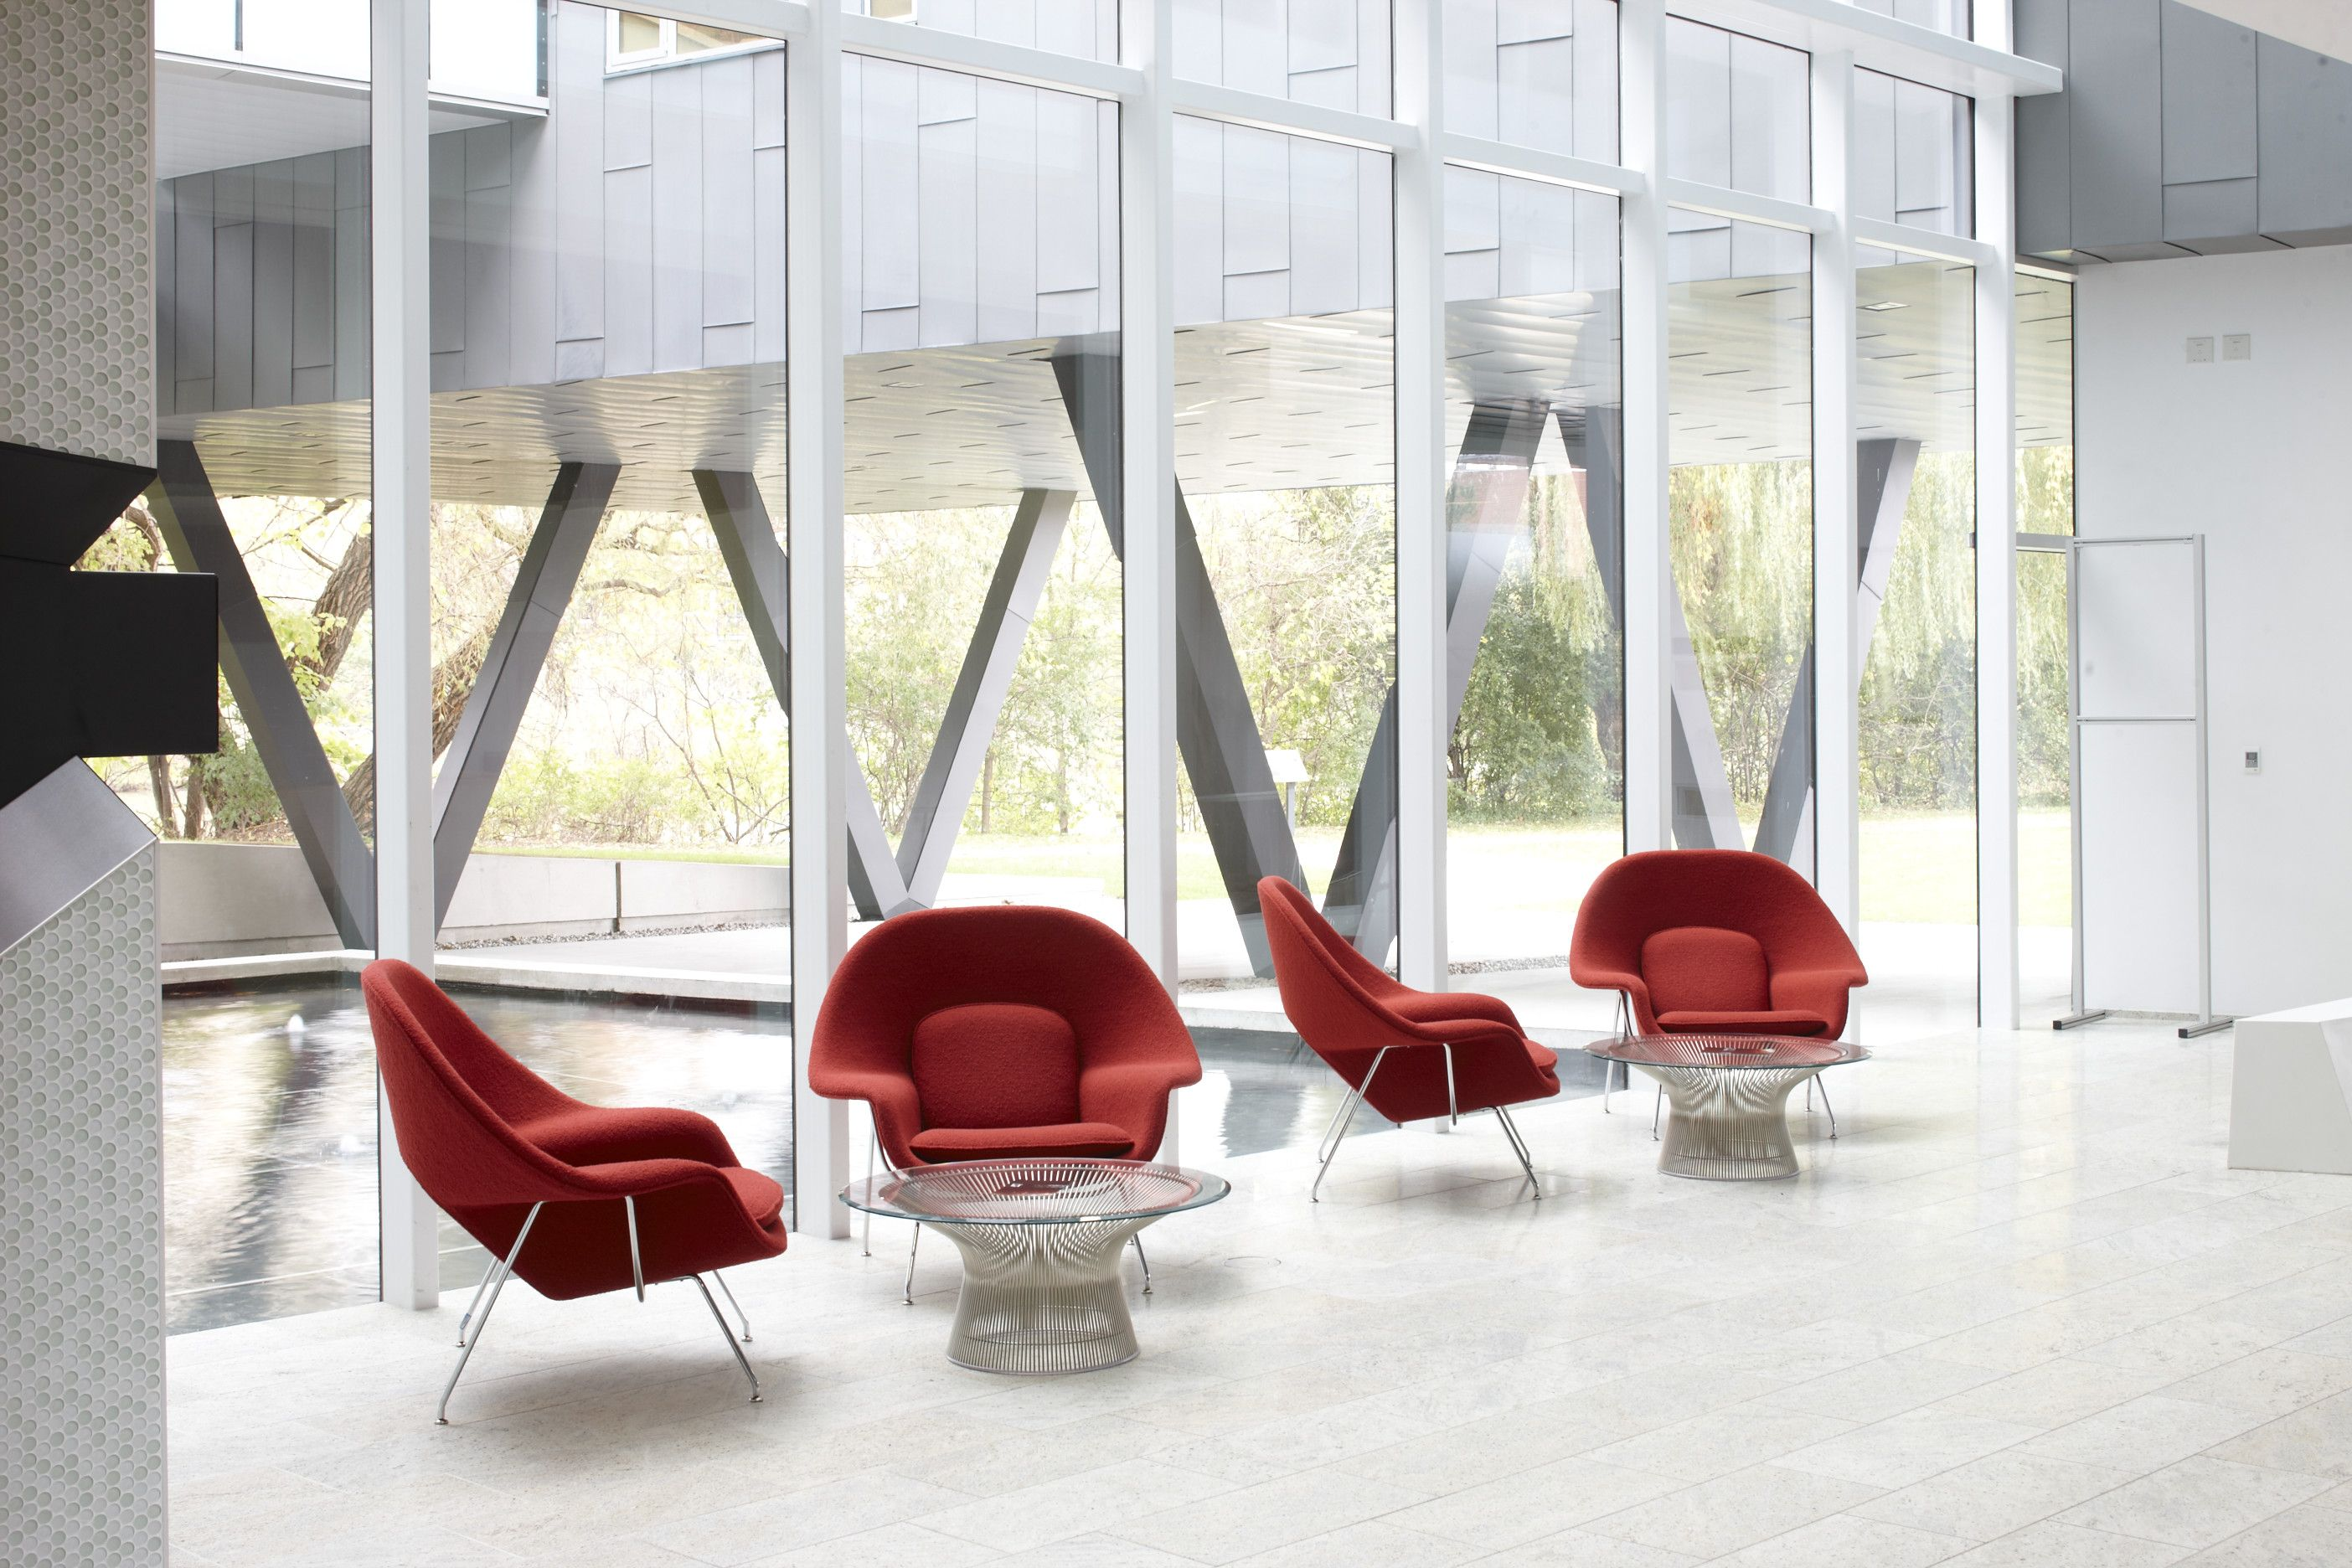 Saarinen Womb Chairs and Platner Coffee Tables